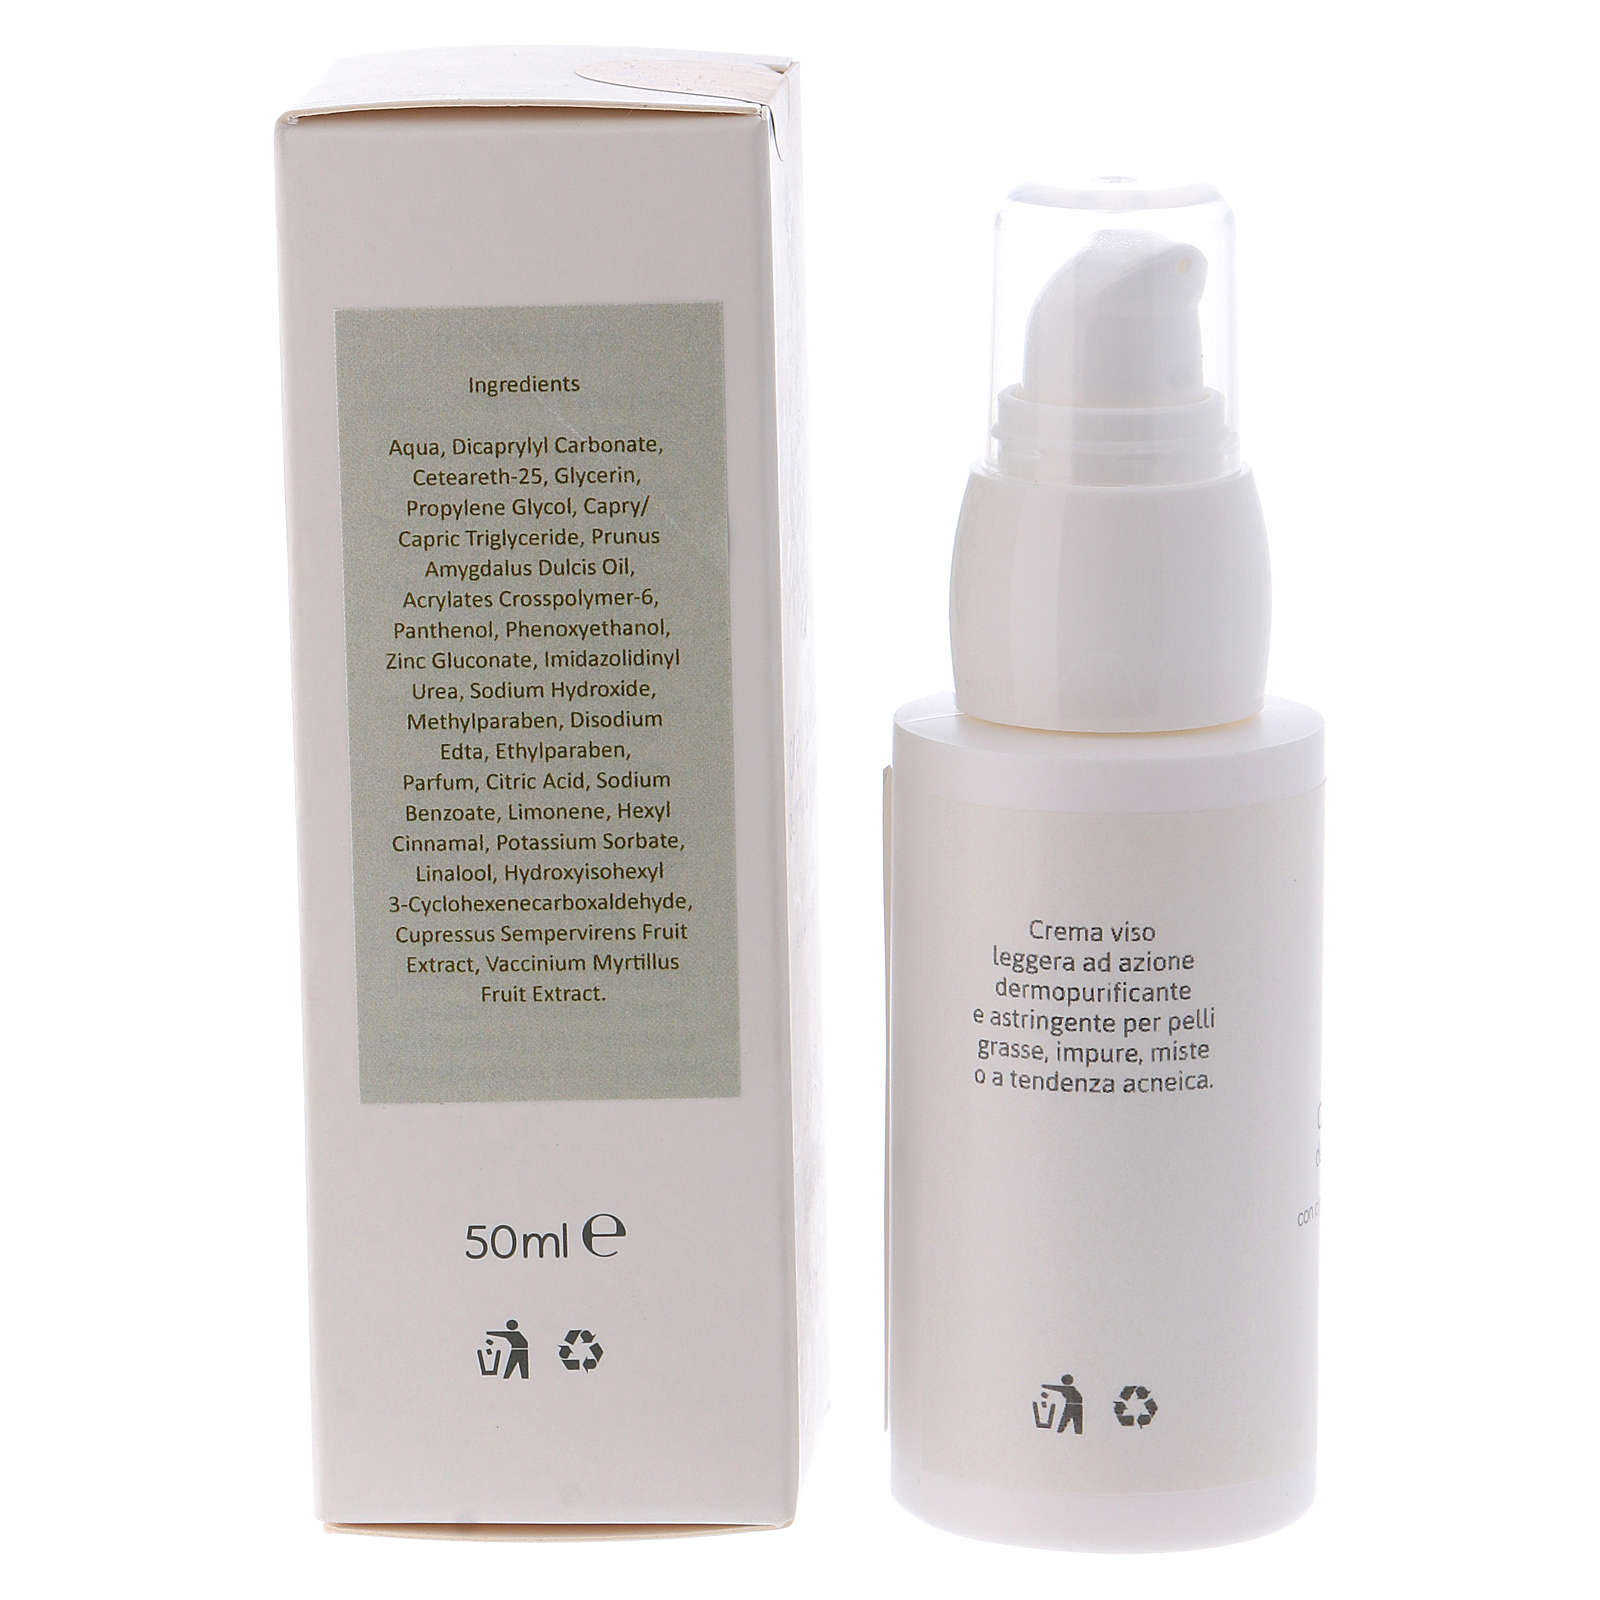 Skin purifying face cream 50ml  Valserena 4